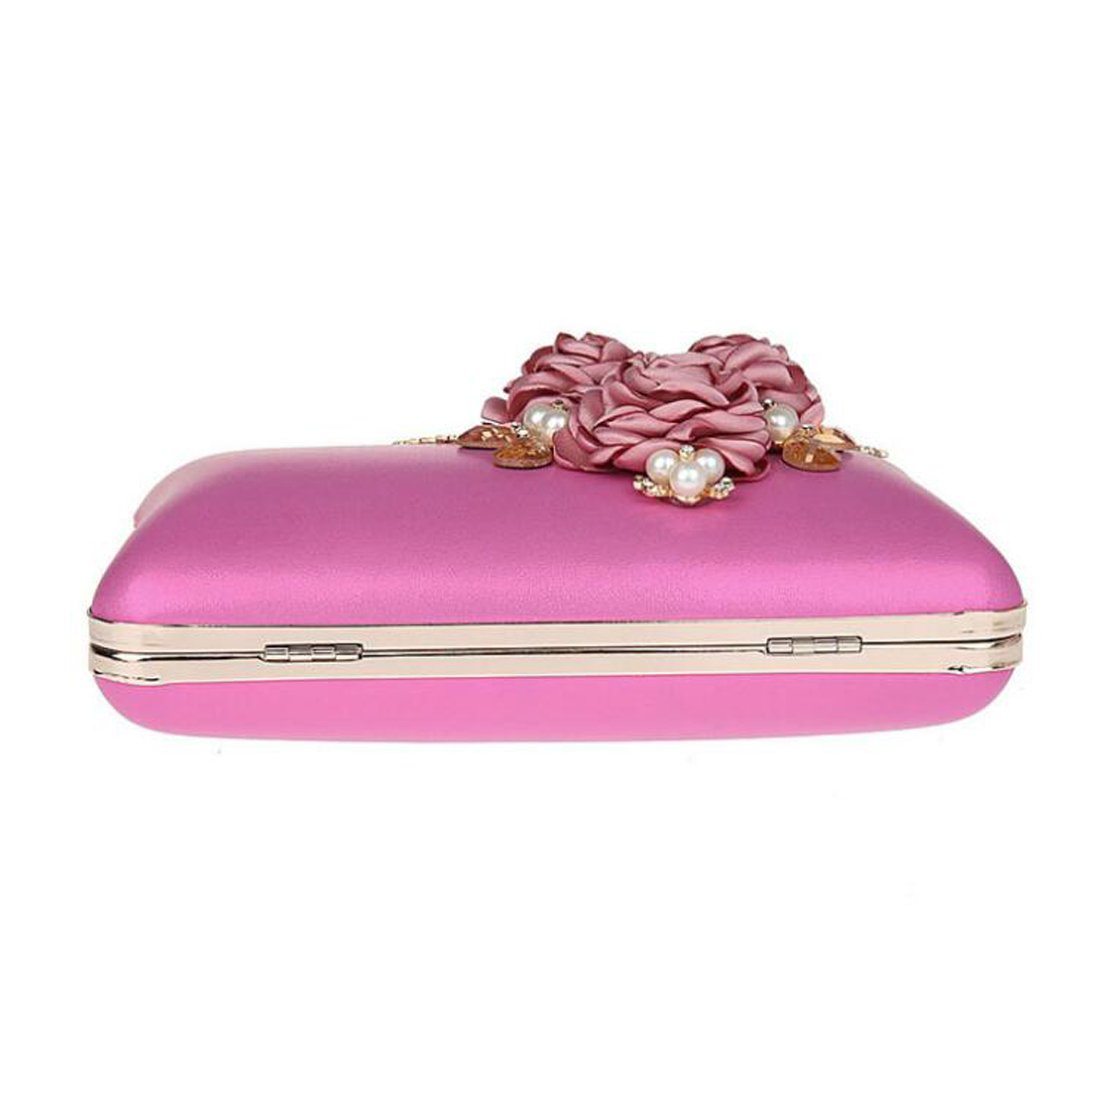 EPLAZA Women Large Capacity Flora Evening Clutch Bags Wedding Party Purse Handbags Wallet (rose red) by EPLAZA (Image #3)